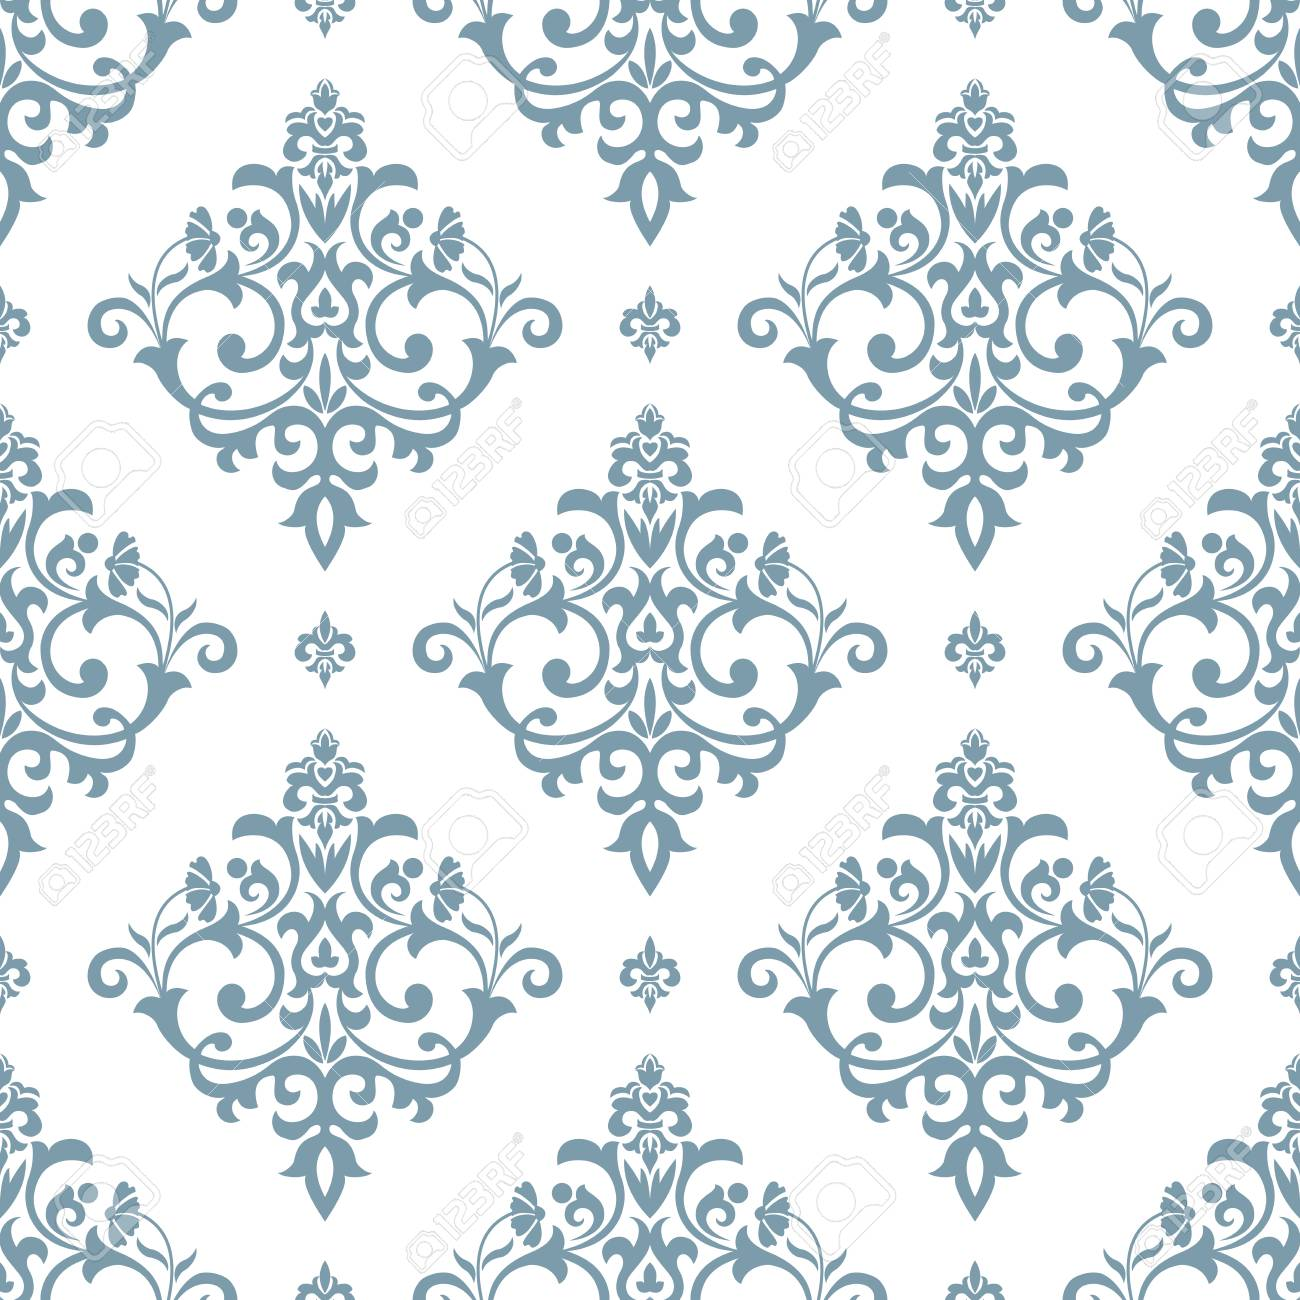 Floral Pattern Wallpaper Baroque Damask Seamless Vector Background Royalty Free Cliparts Vectors And Stock Illustration Image 94383791